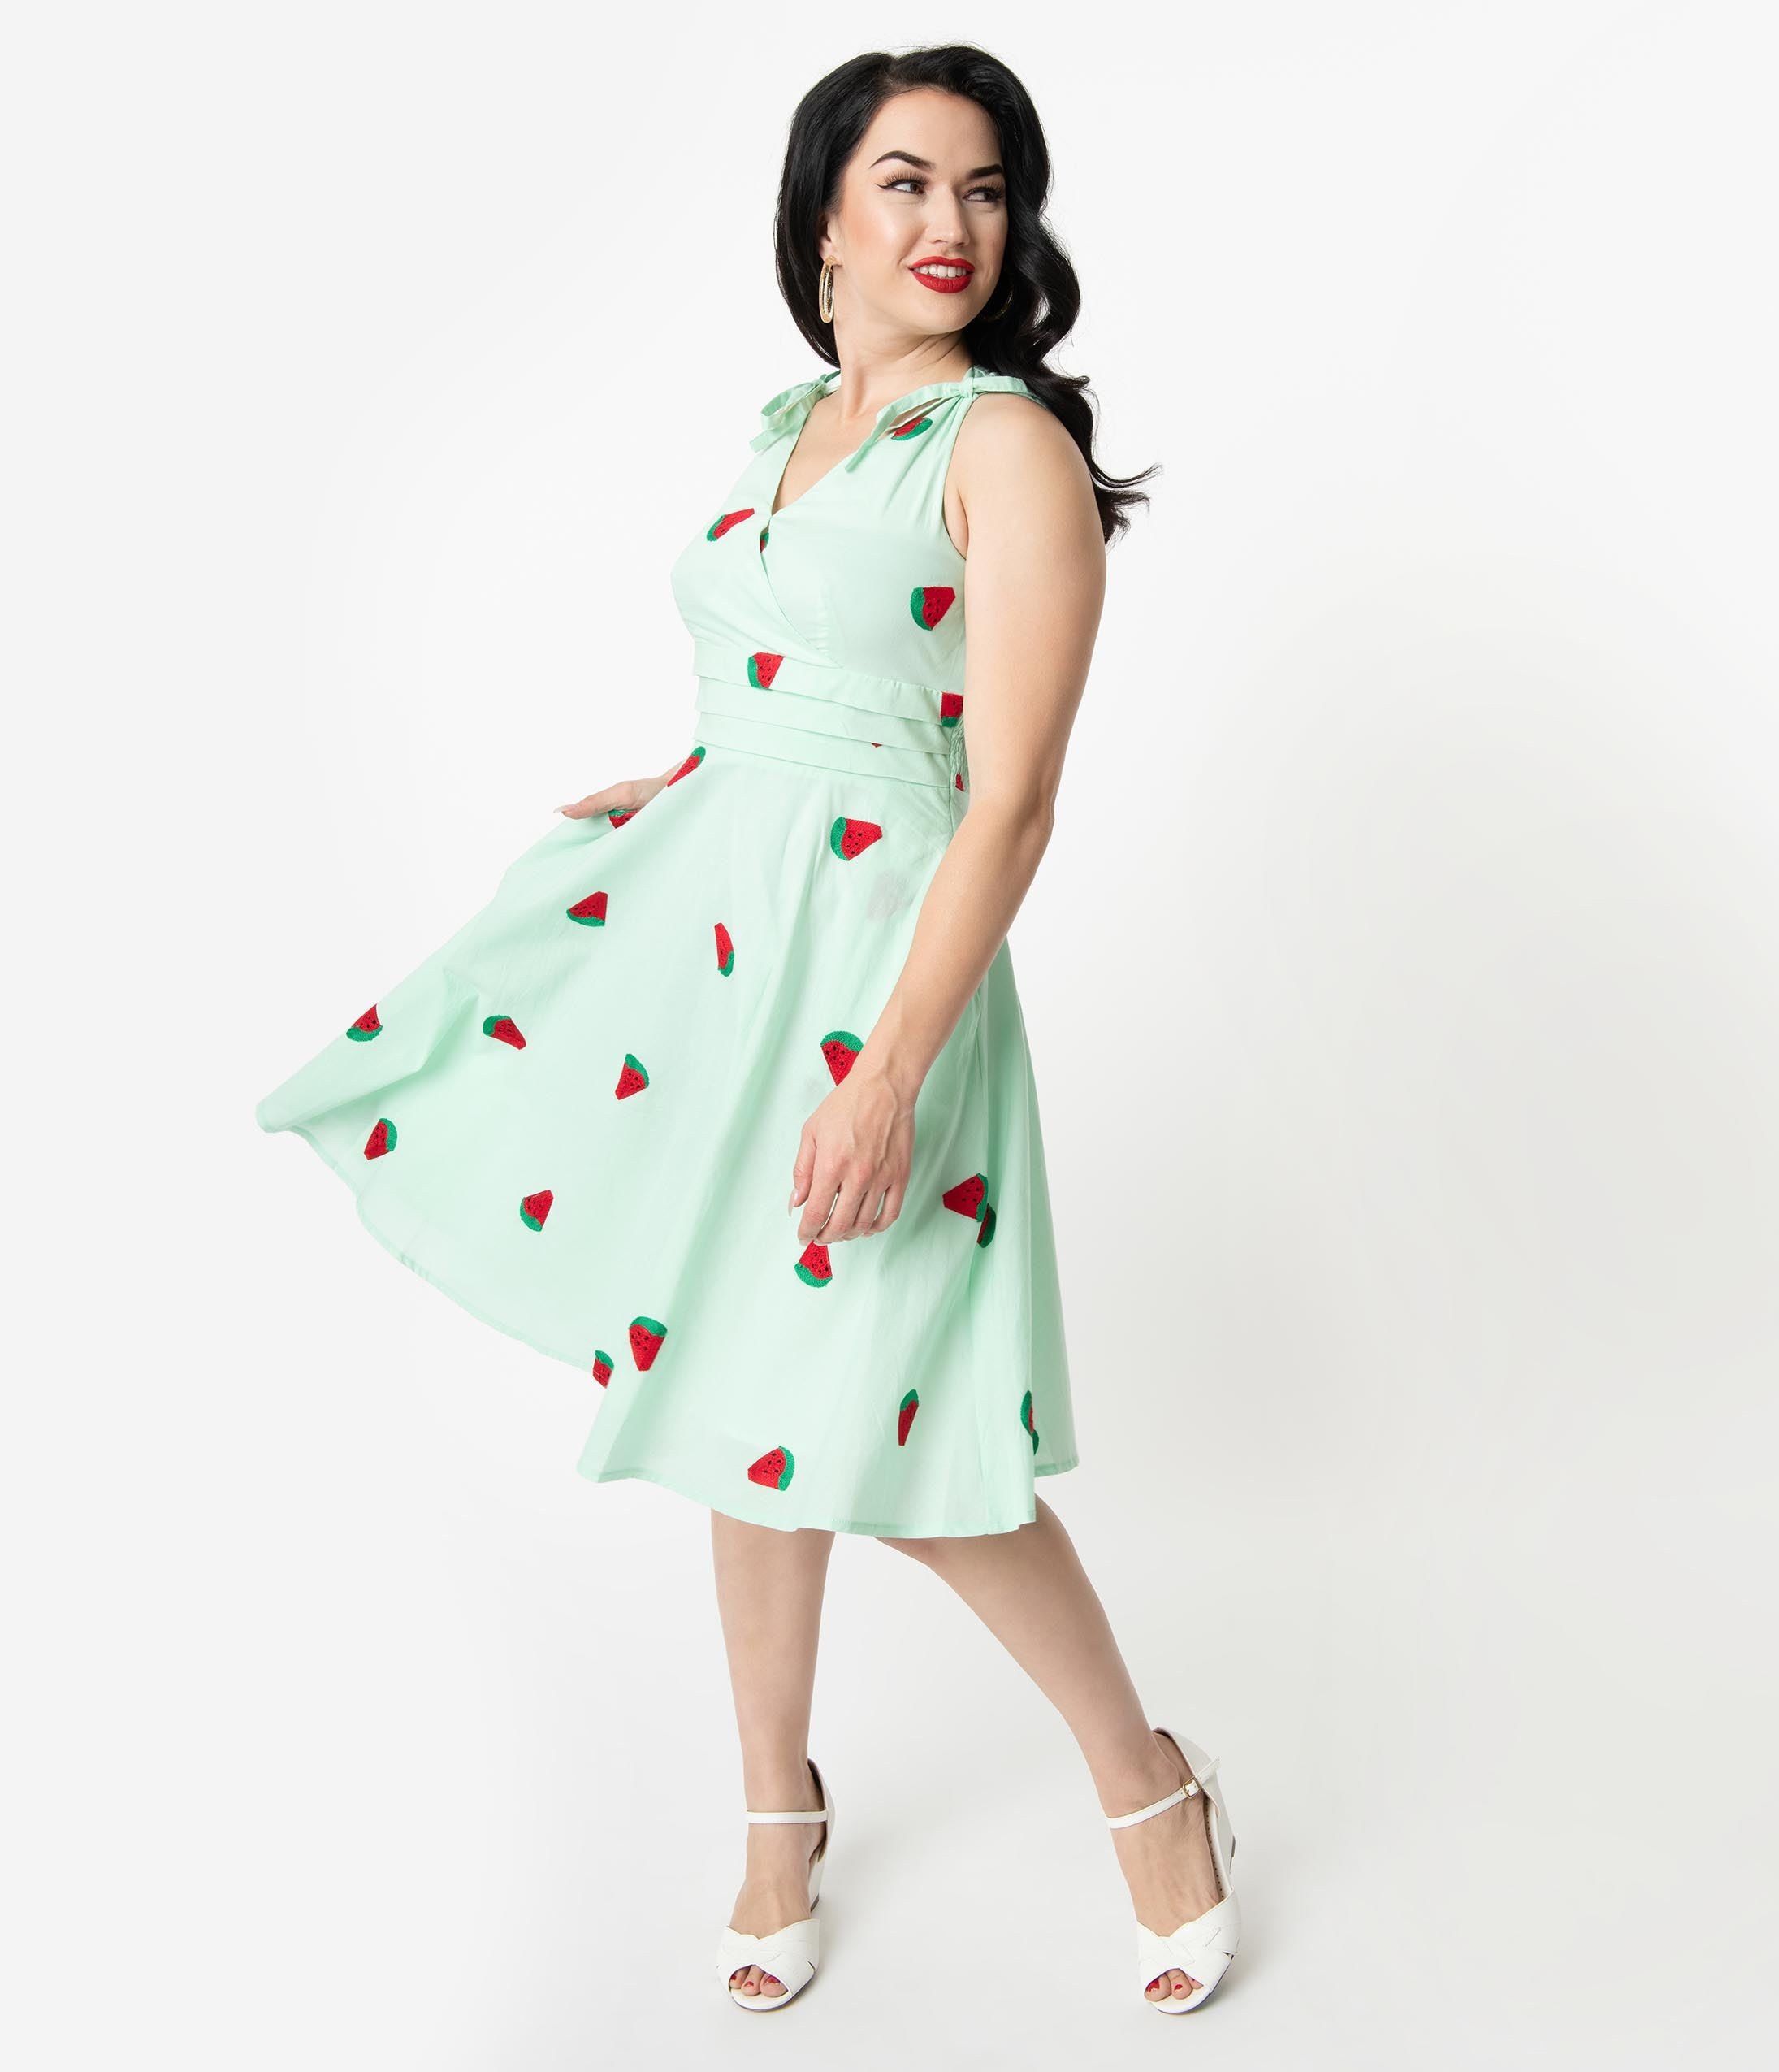 d6d4d741b8bf Voodoo Vixen 1950s Style Mint Embroidered Watermelon Slices Delia Swing  Dress. 1 Review. Plus Size Vintage Style ...